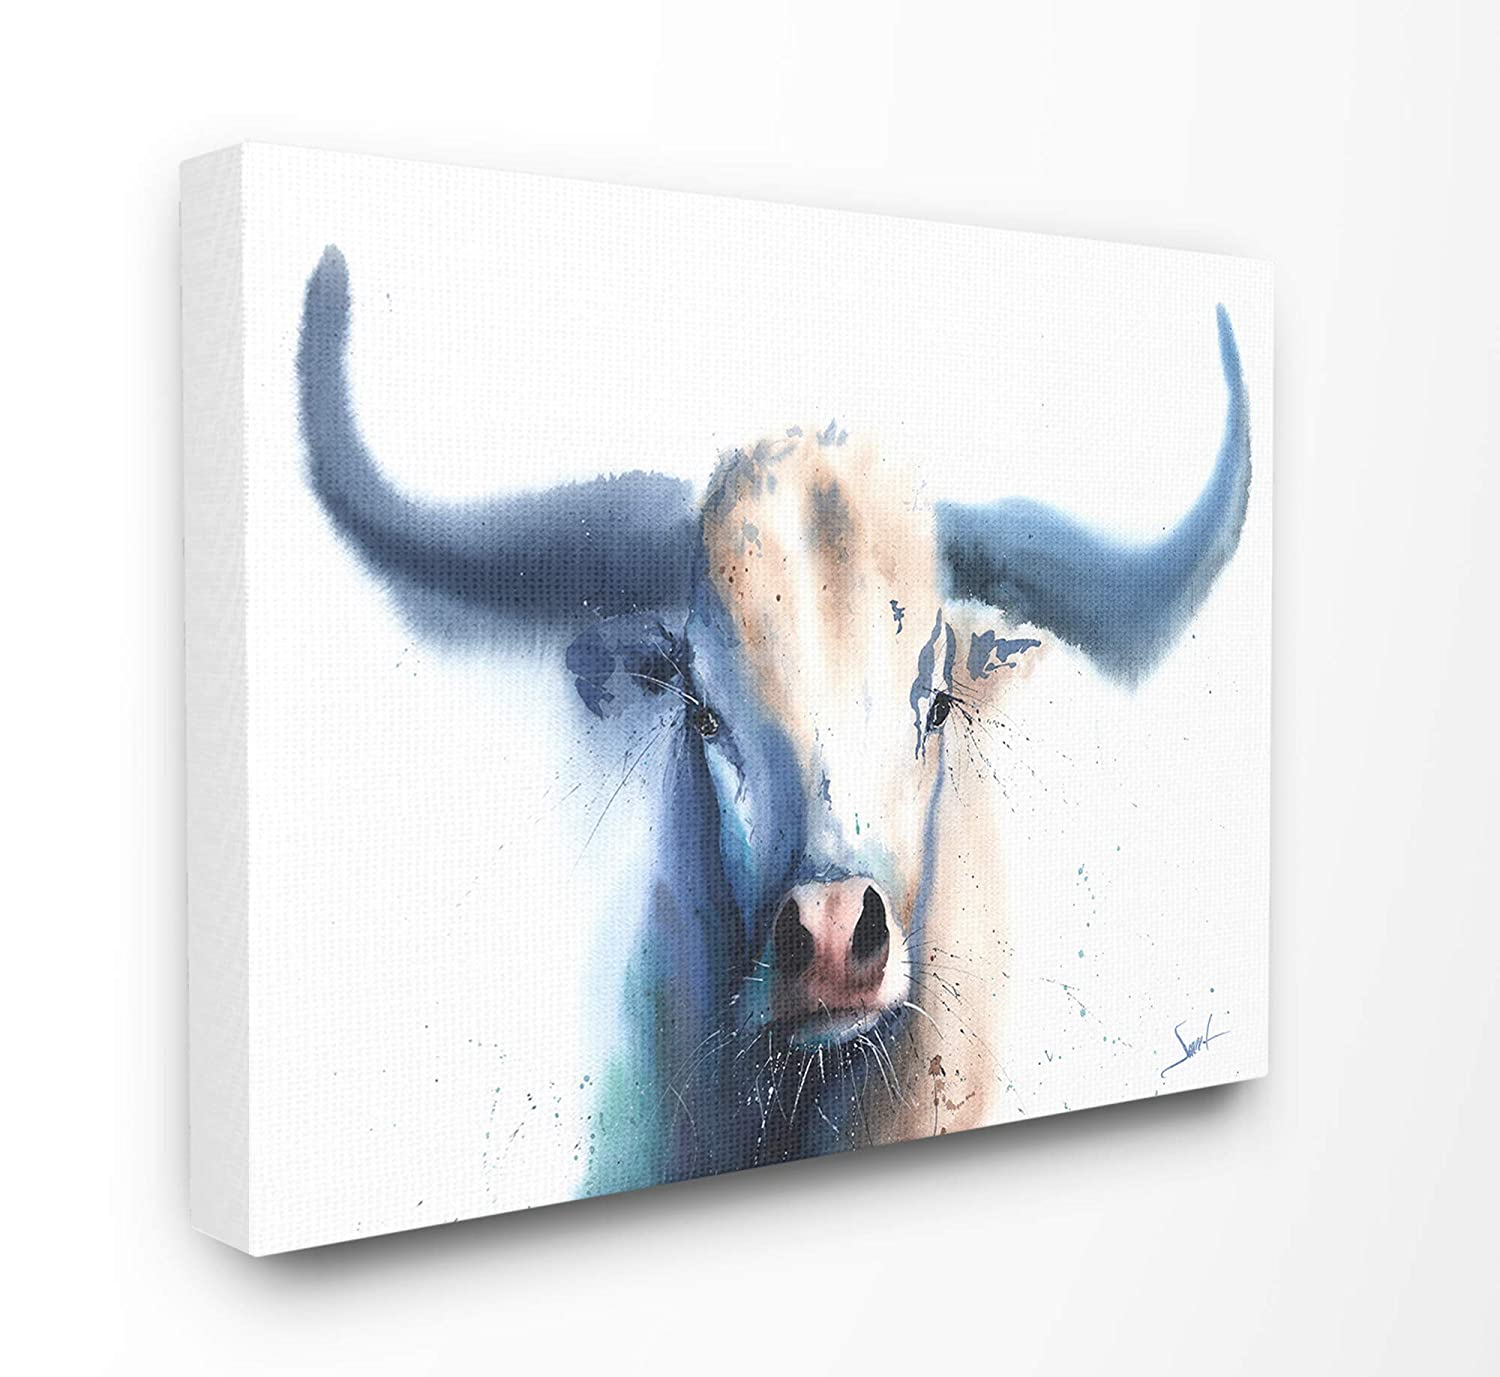 The Stupell Home Decor Bright White and Blue Watercolor Bull Painting Wall Plaque Art 13 x 19 Multi-Color